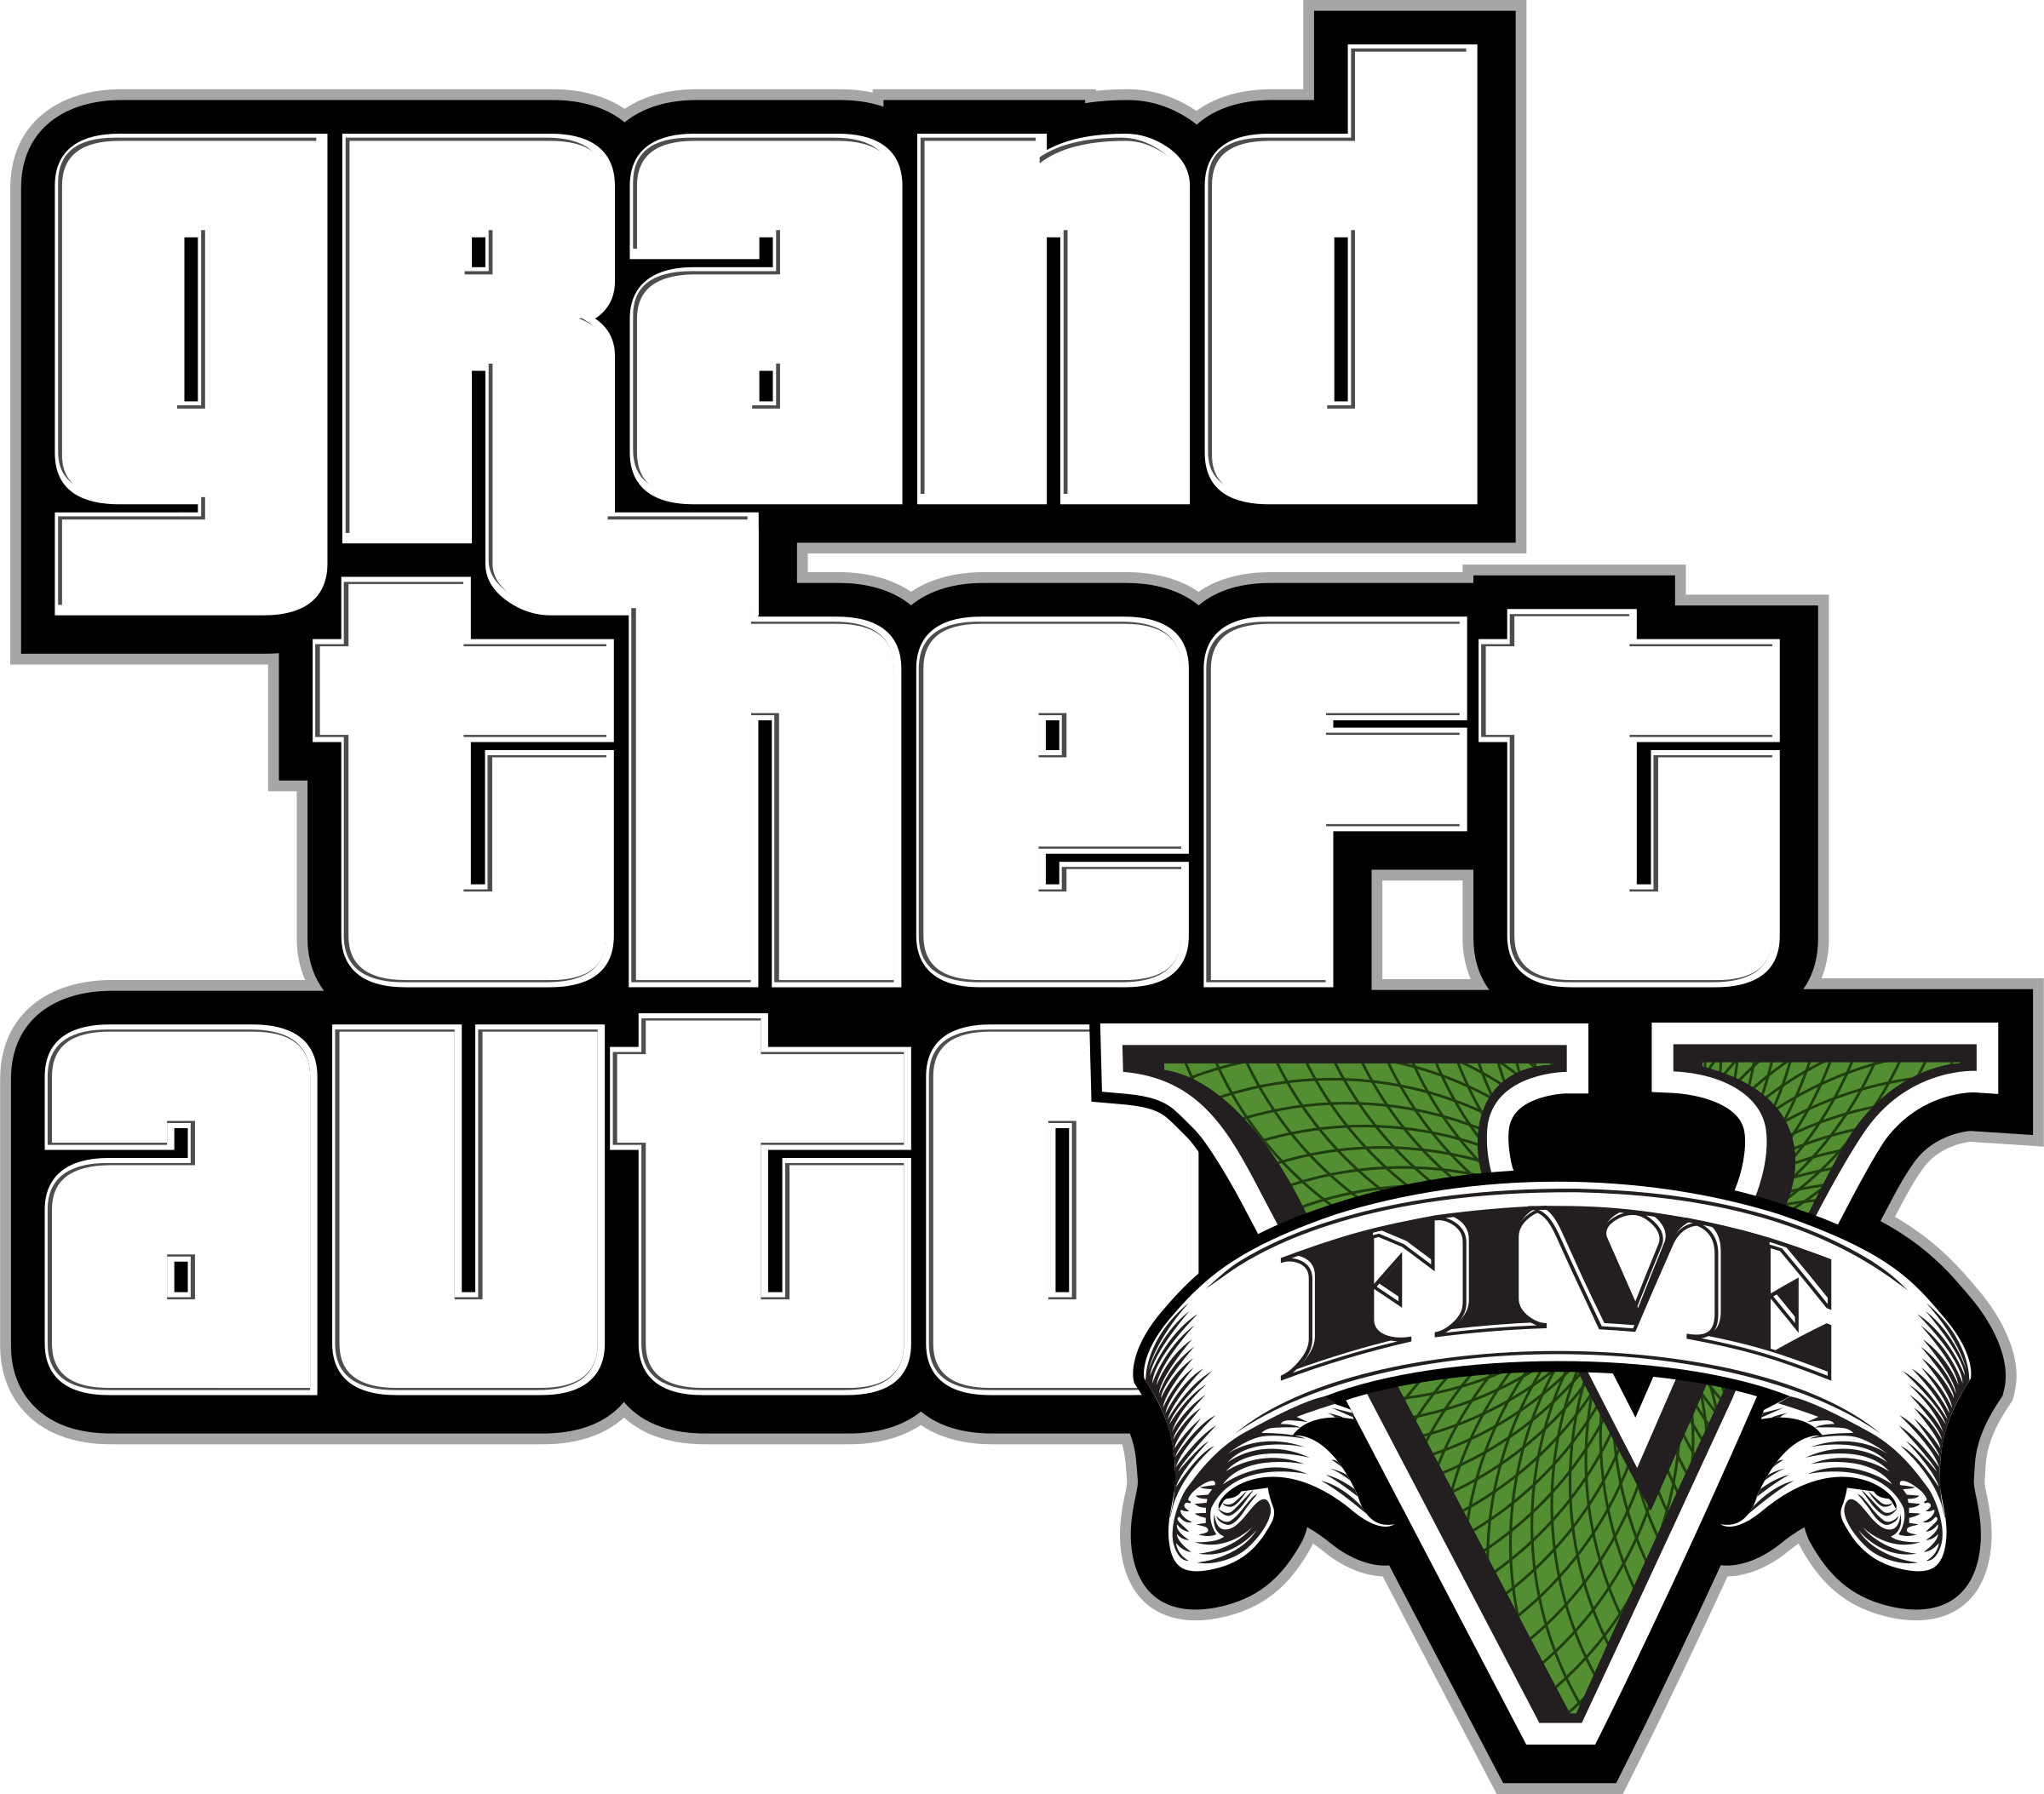 Grand Theft Auto V Logo PNG Transparent & SVG Vector.